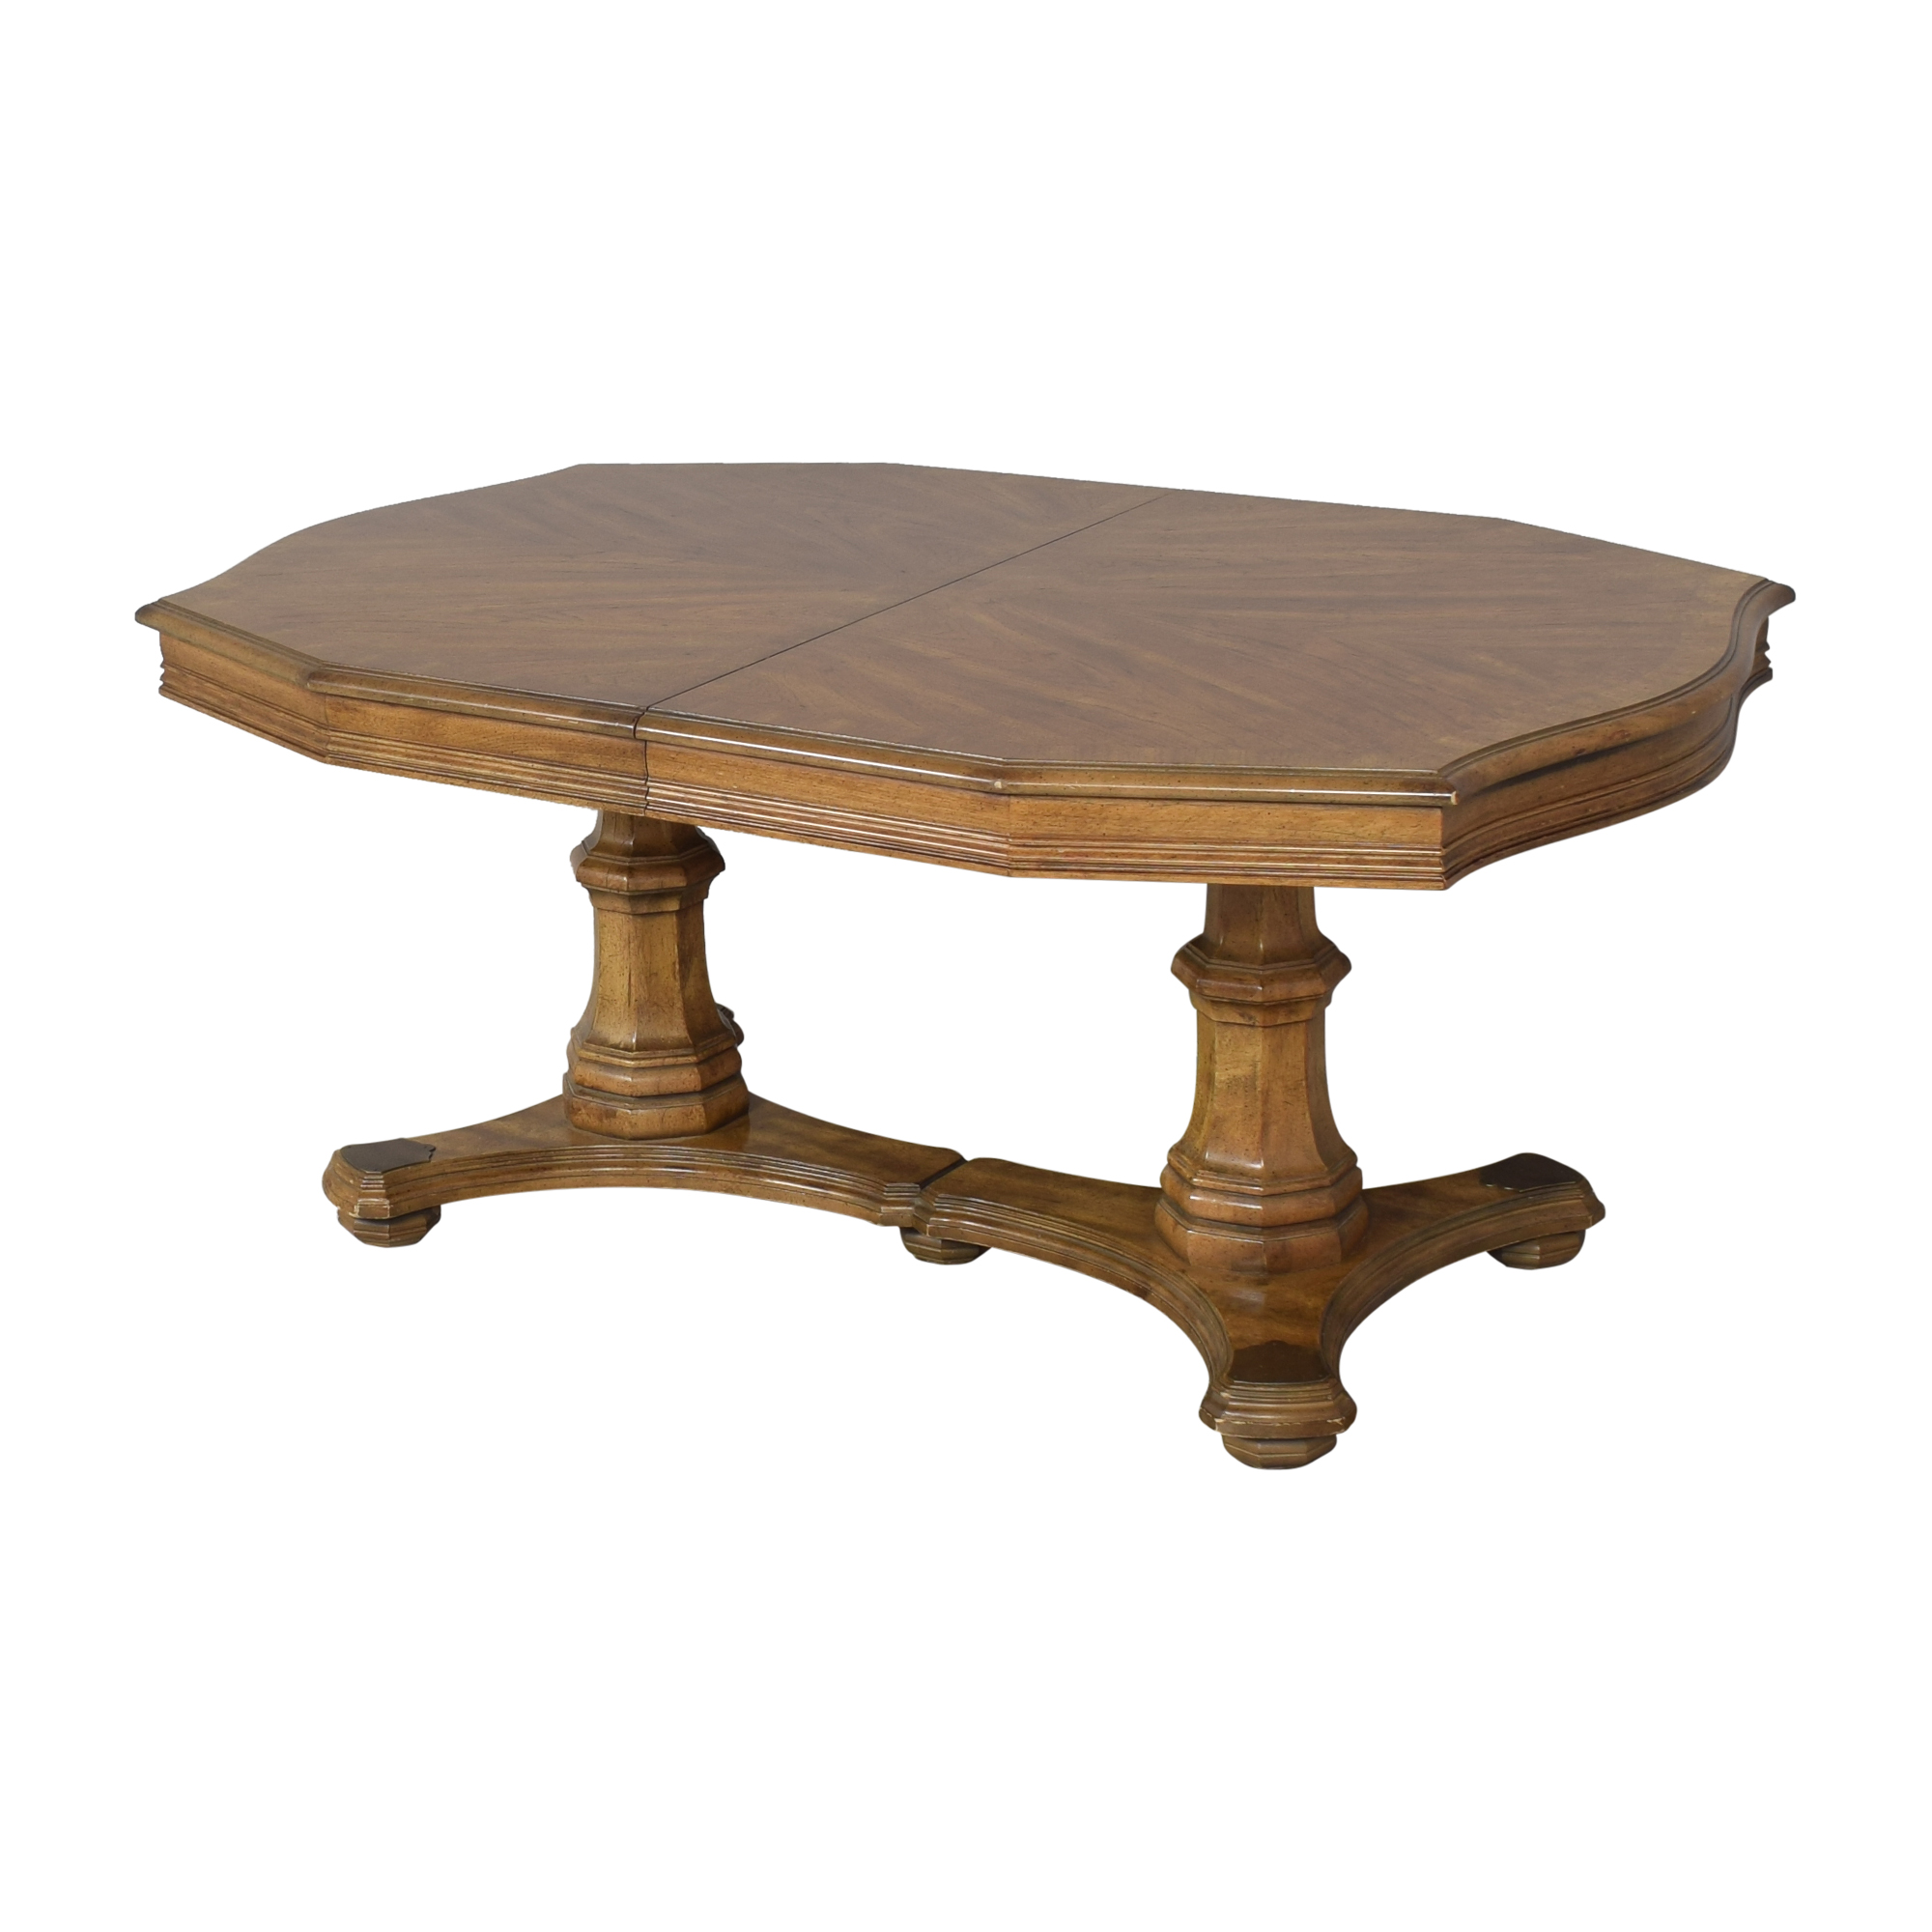 Trestle Pedestal Extendable Dining Table price